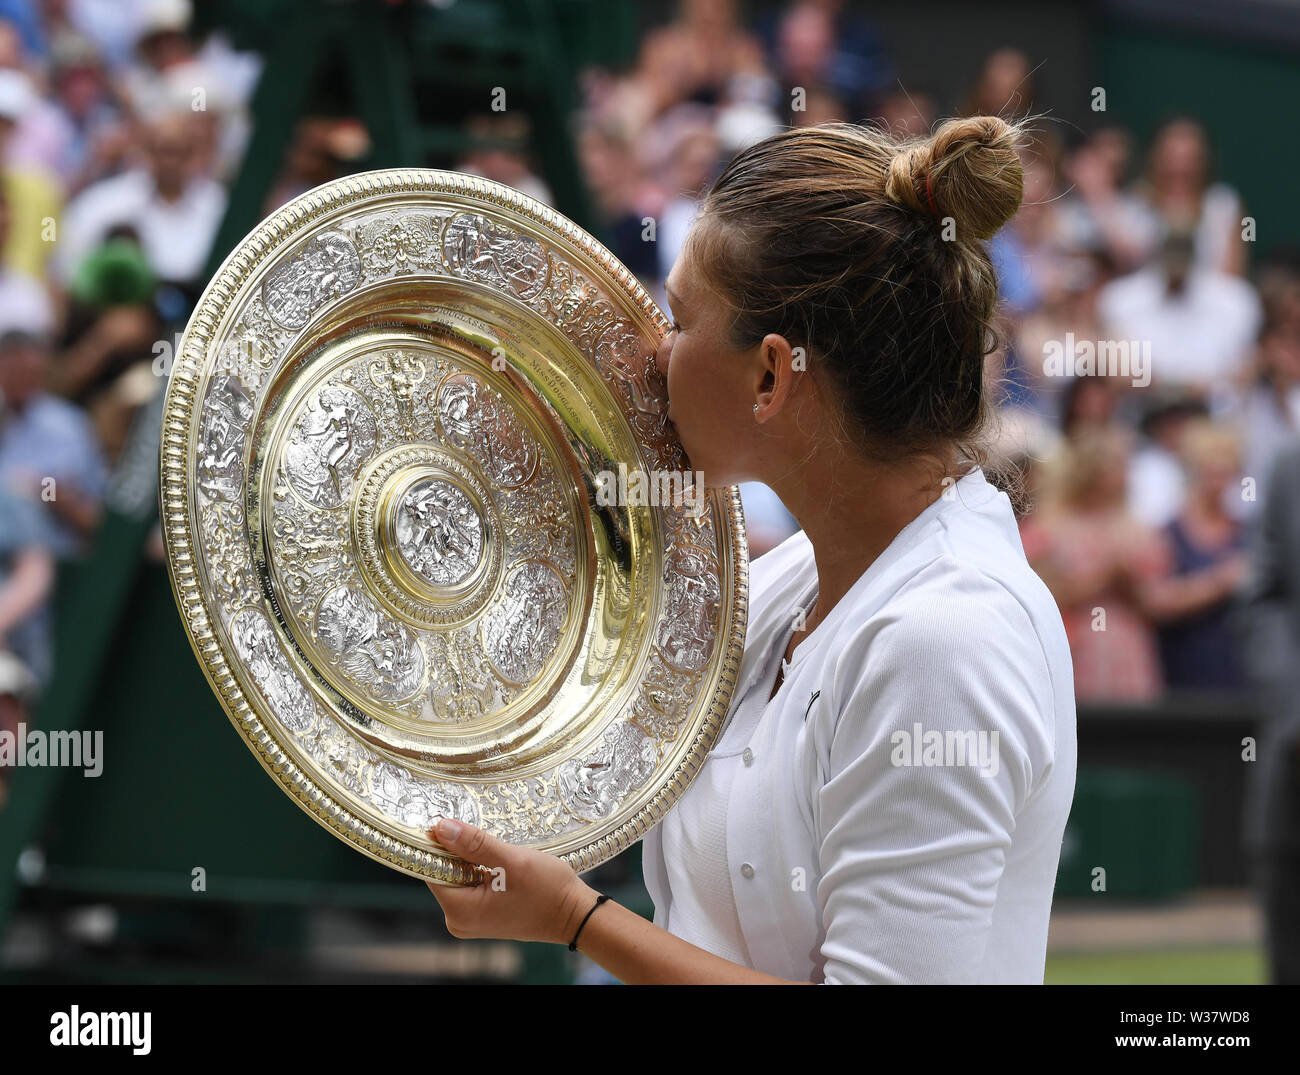 London, UK. 13th July, 2019. The Championships Wimbledon 2019 13072019 Simona Halep kisses the winners trophy the Venus rosewater Dish after she wins Ladies Singles Final Credit: Roger Parker/Alamy Live News - Stock Image